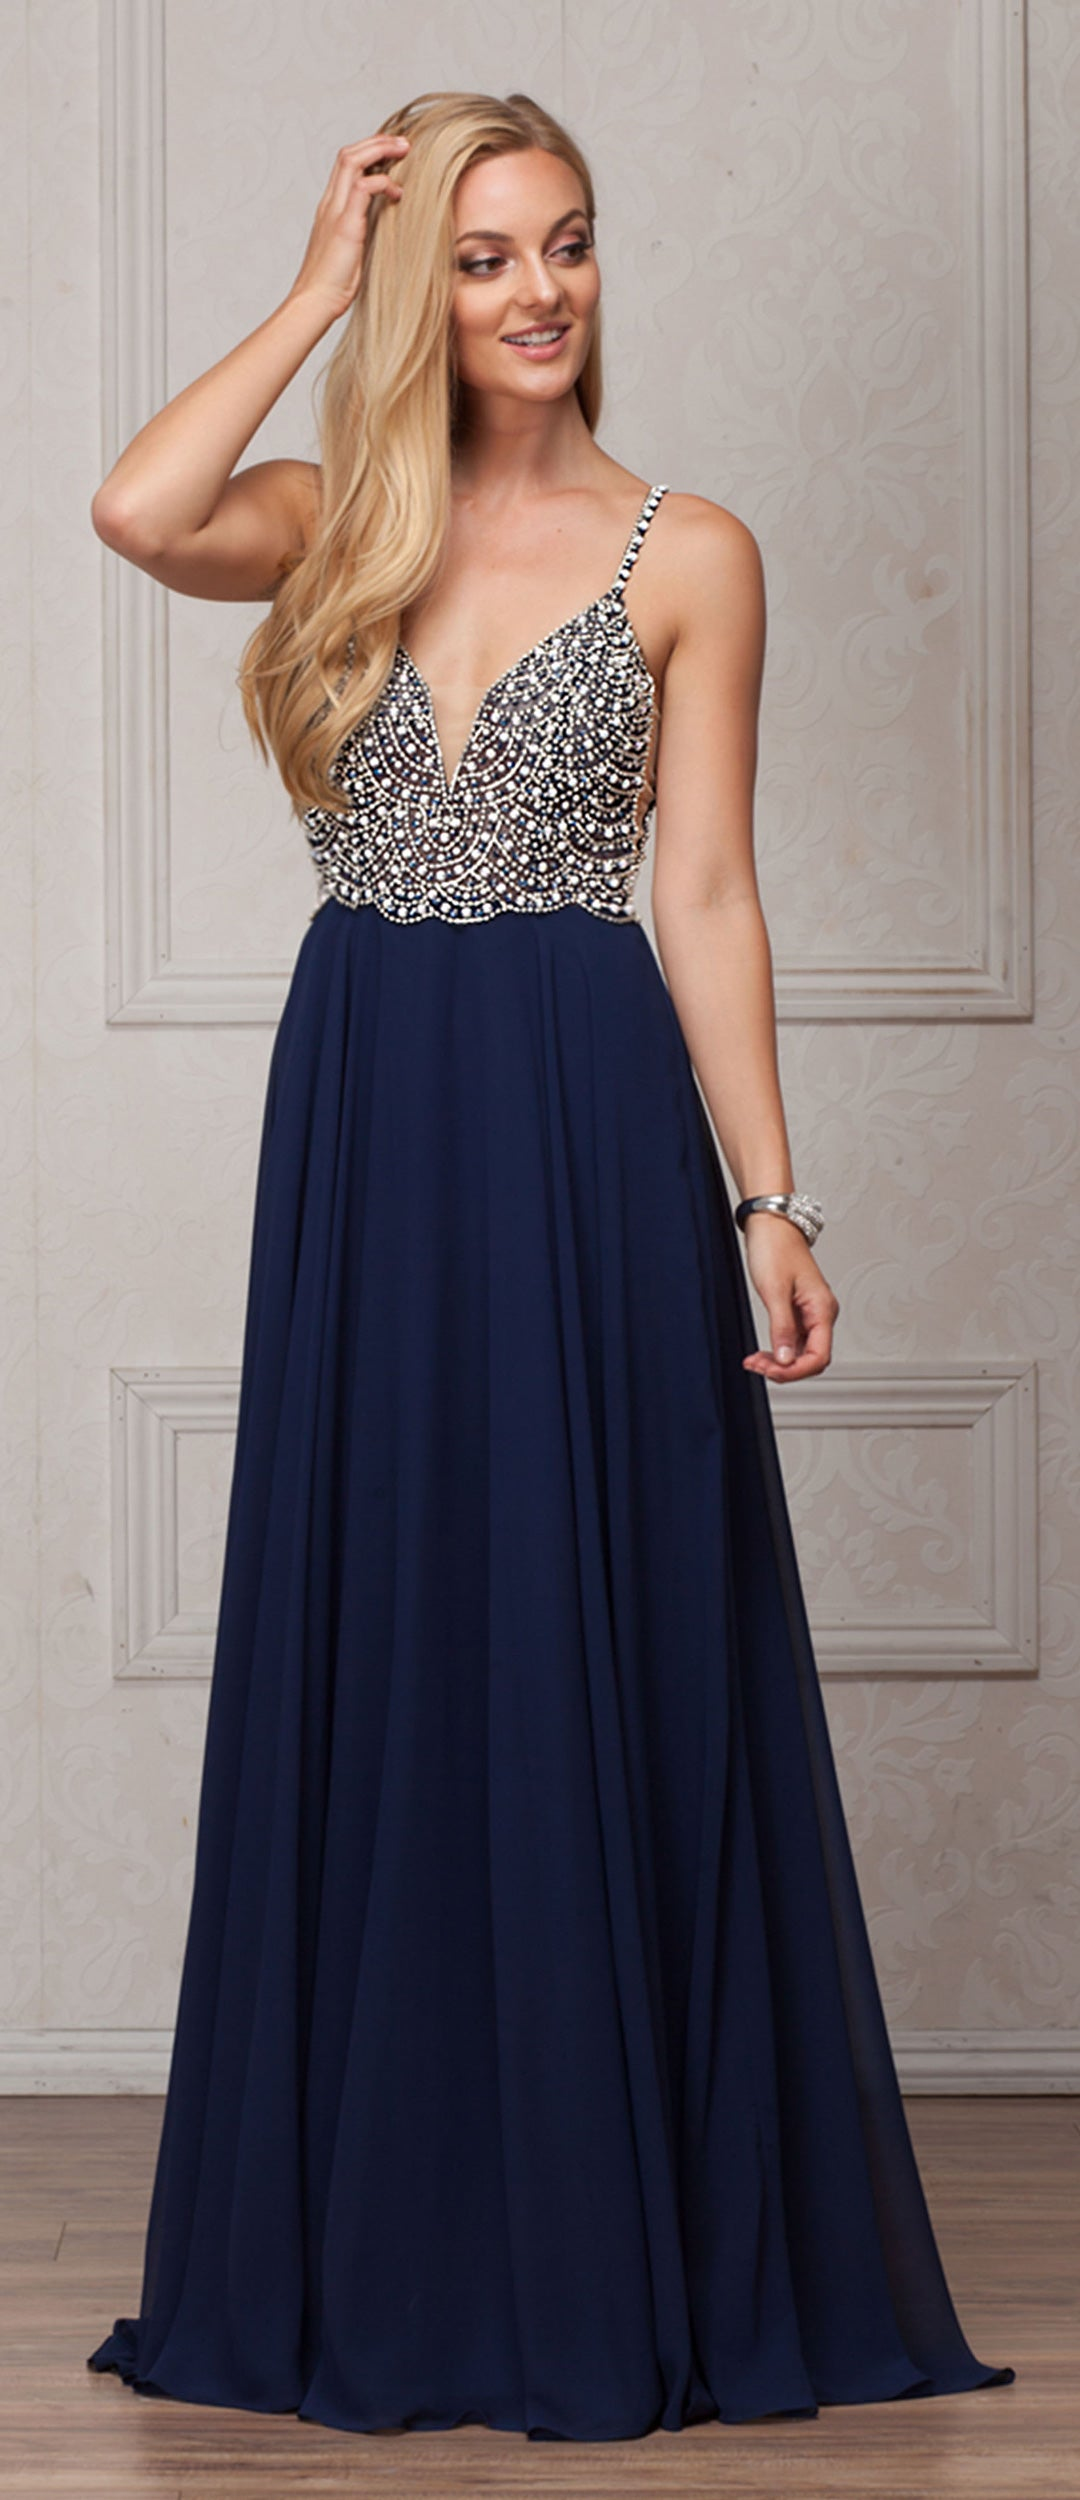 Image of Bejeweled Bodice V-neck Spaghetti Straps Formal Prom Dress in Navy